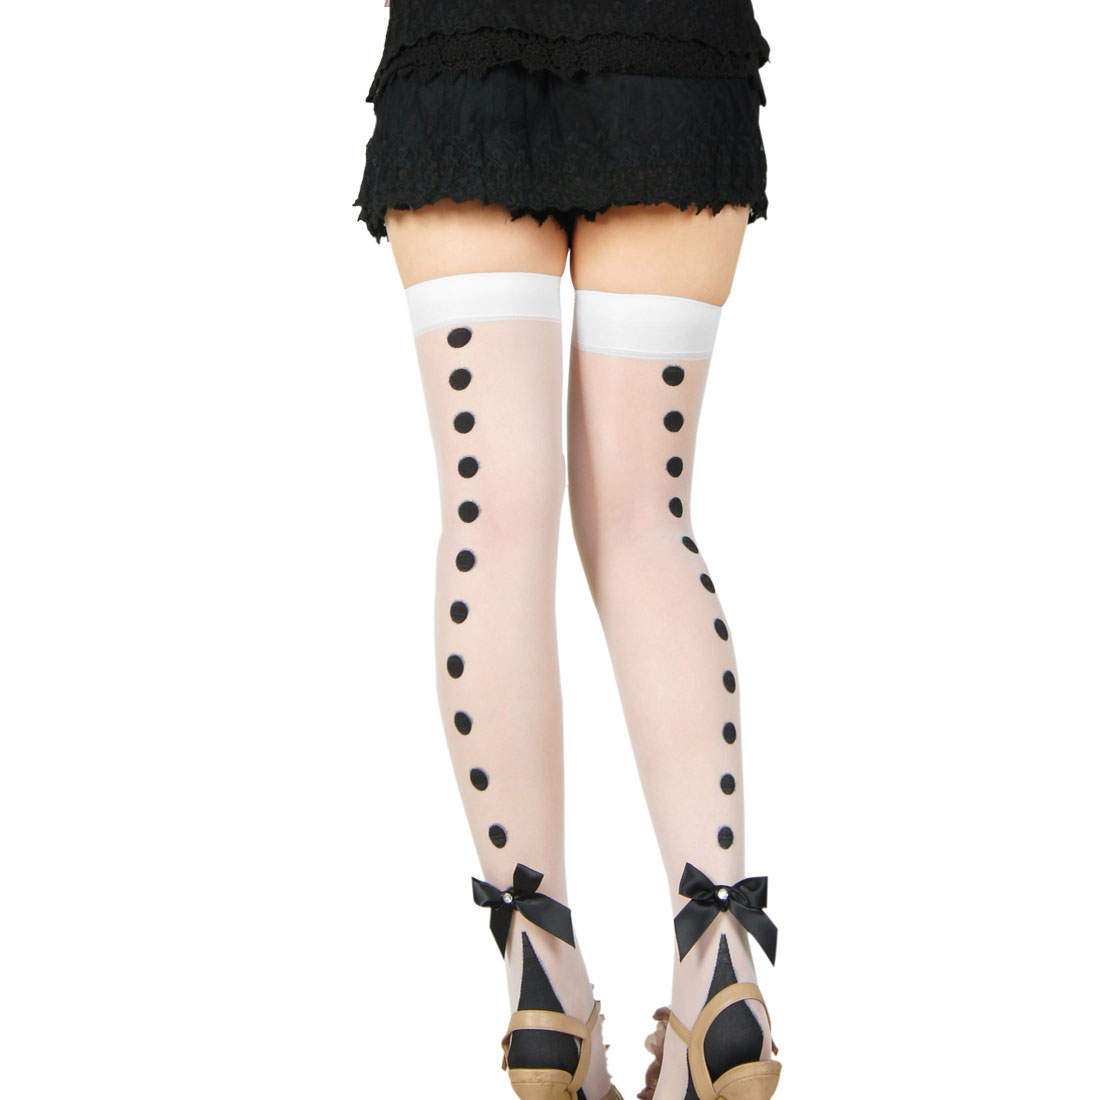 Woman Black Dots Pattern Stretchy Thigh High Sheer Stockings